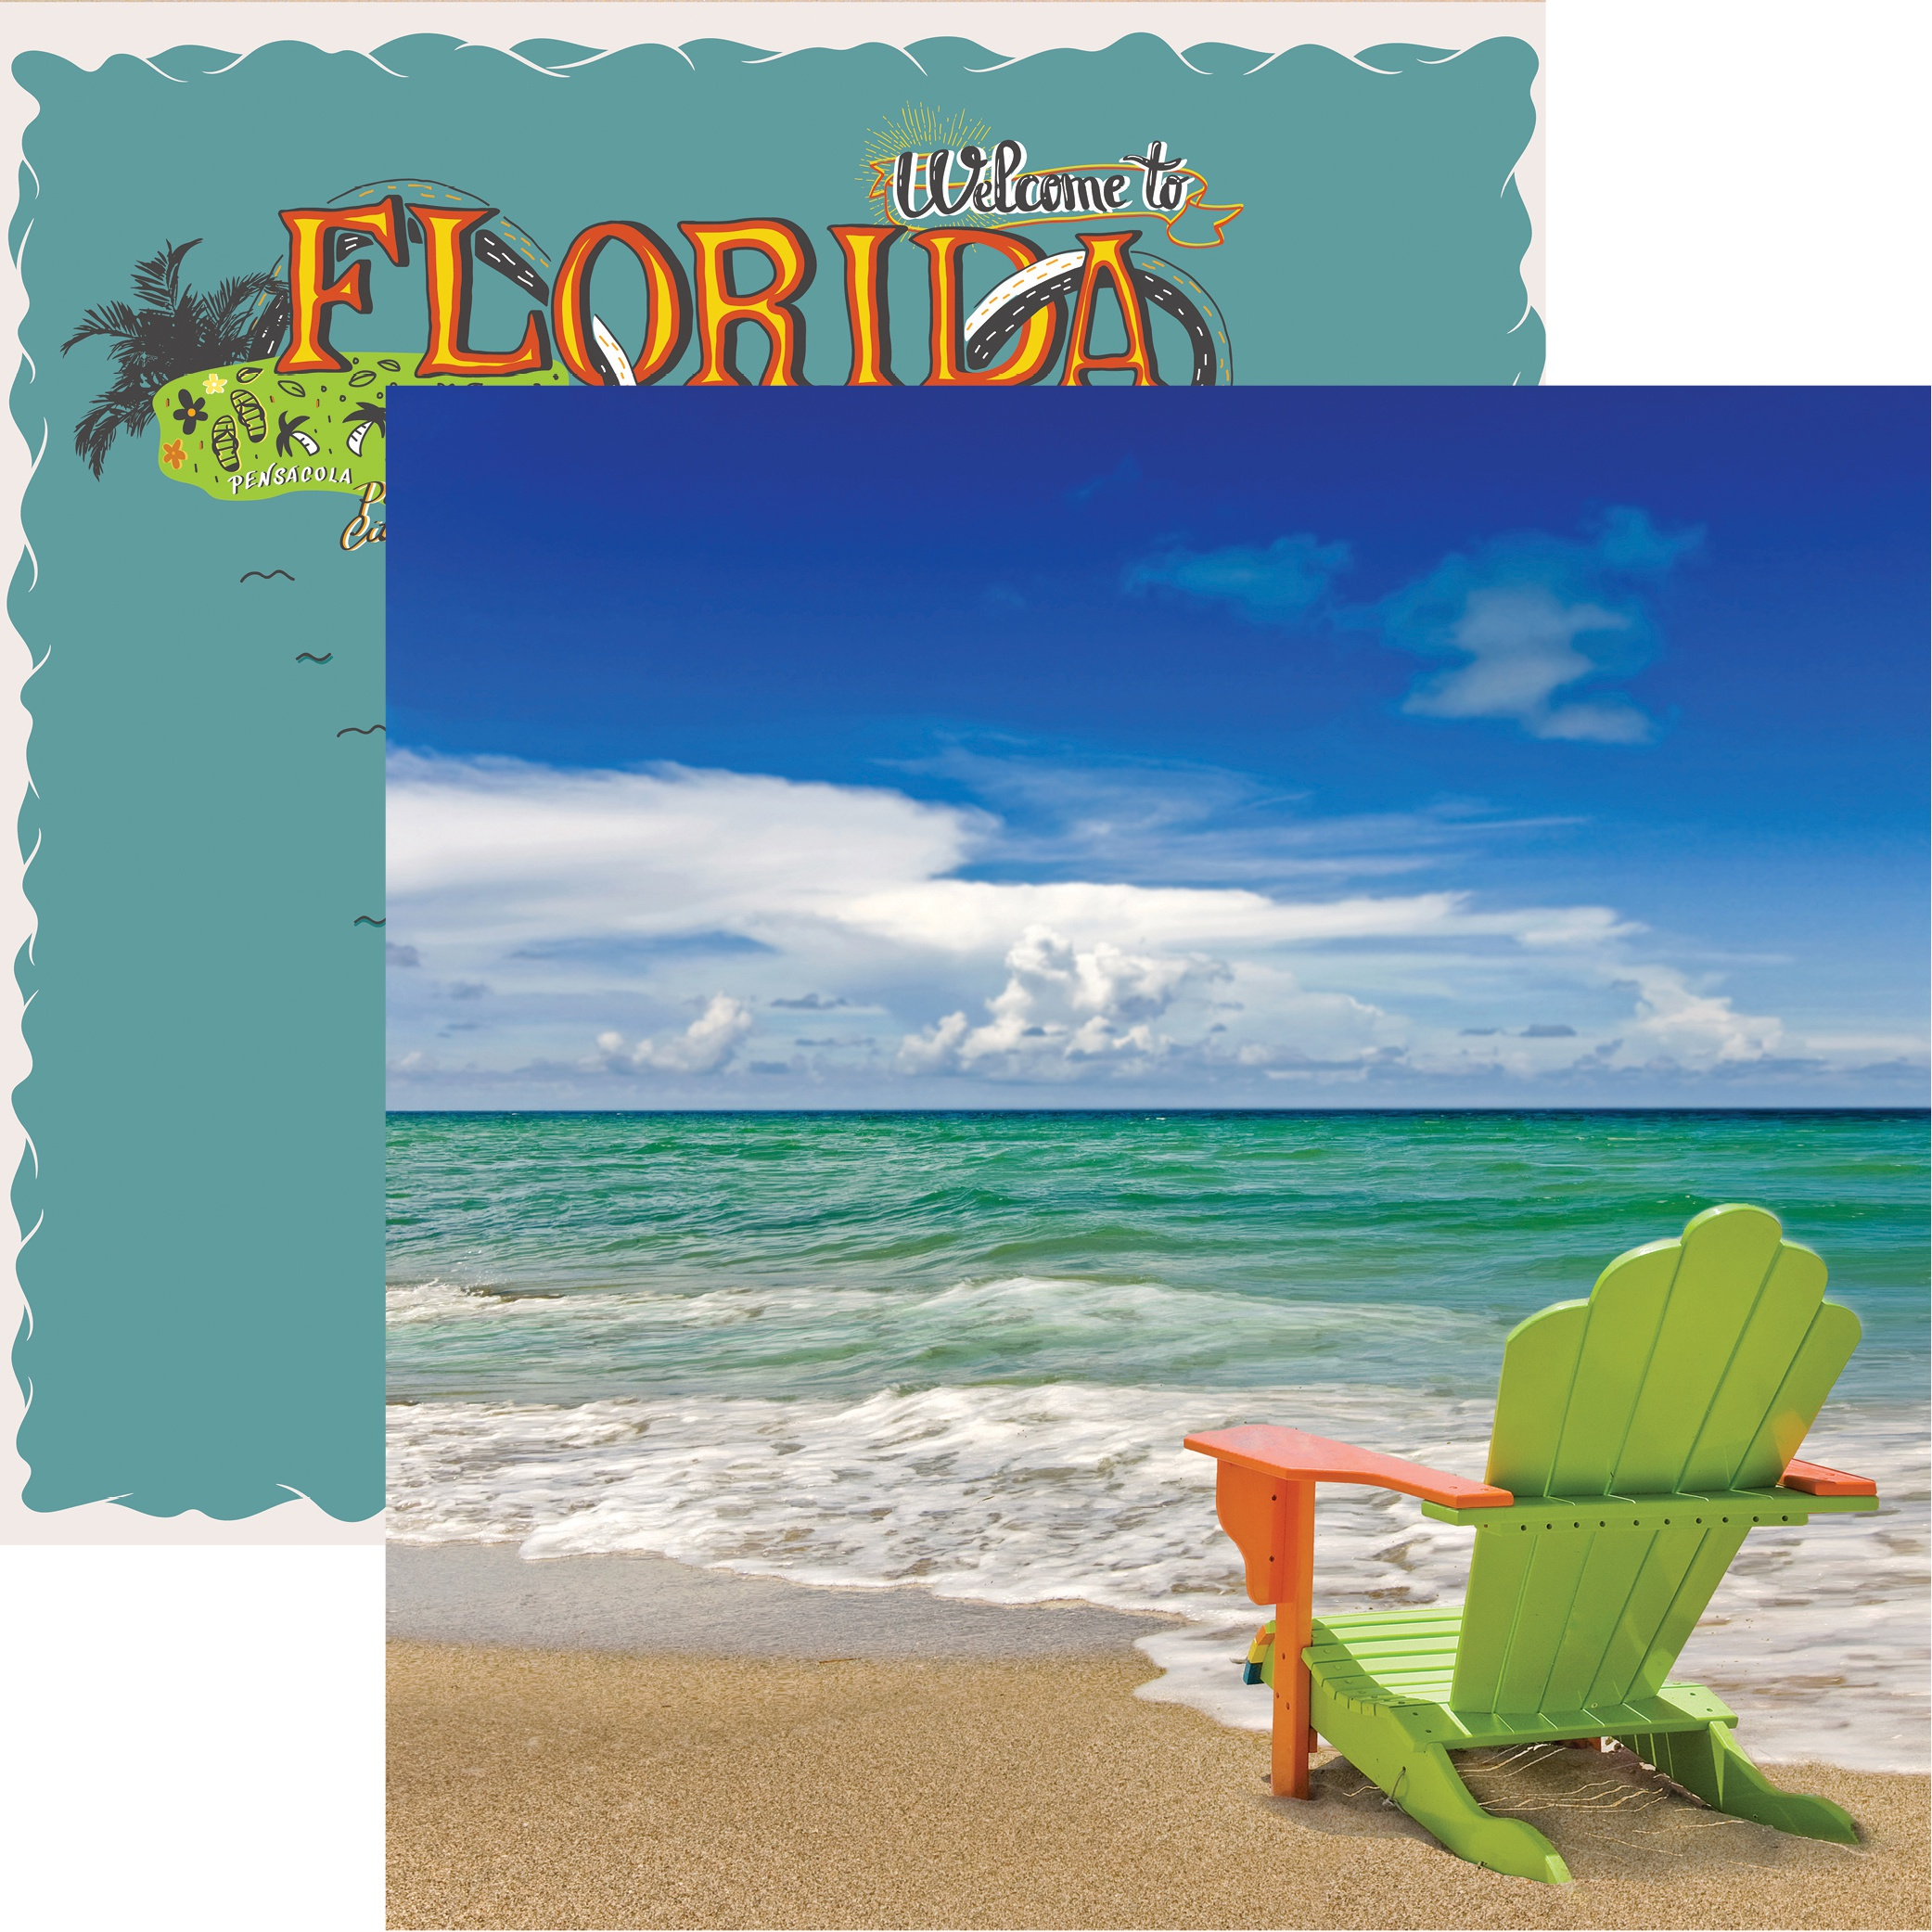 REM Florida Toes in the Sand